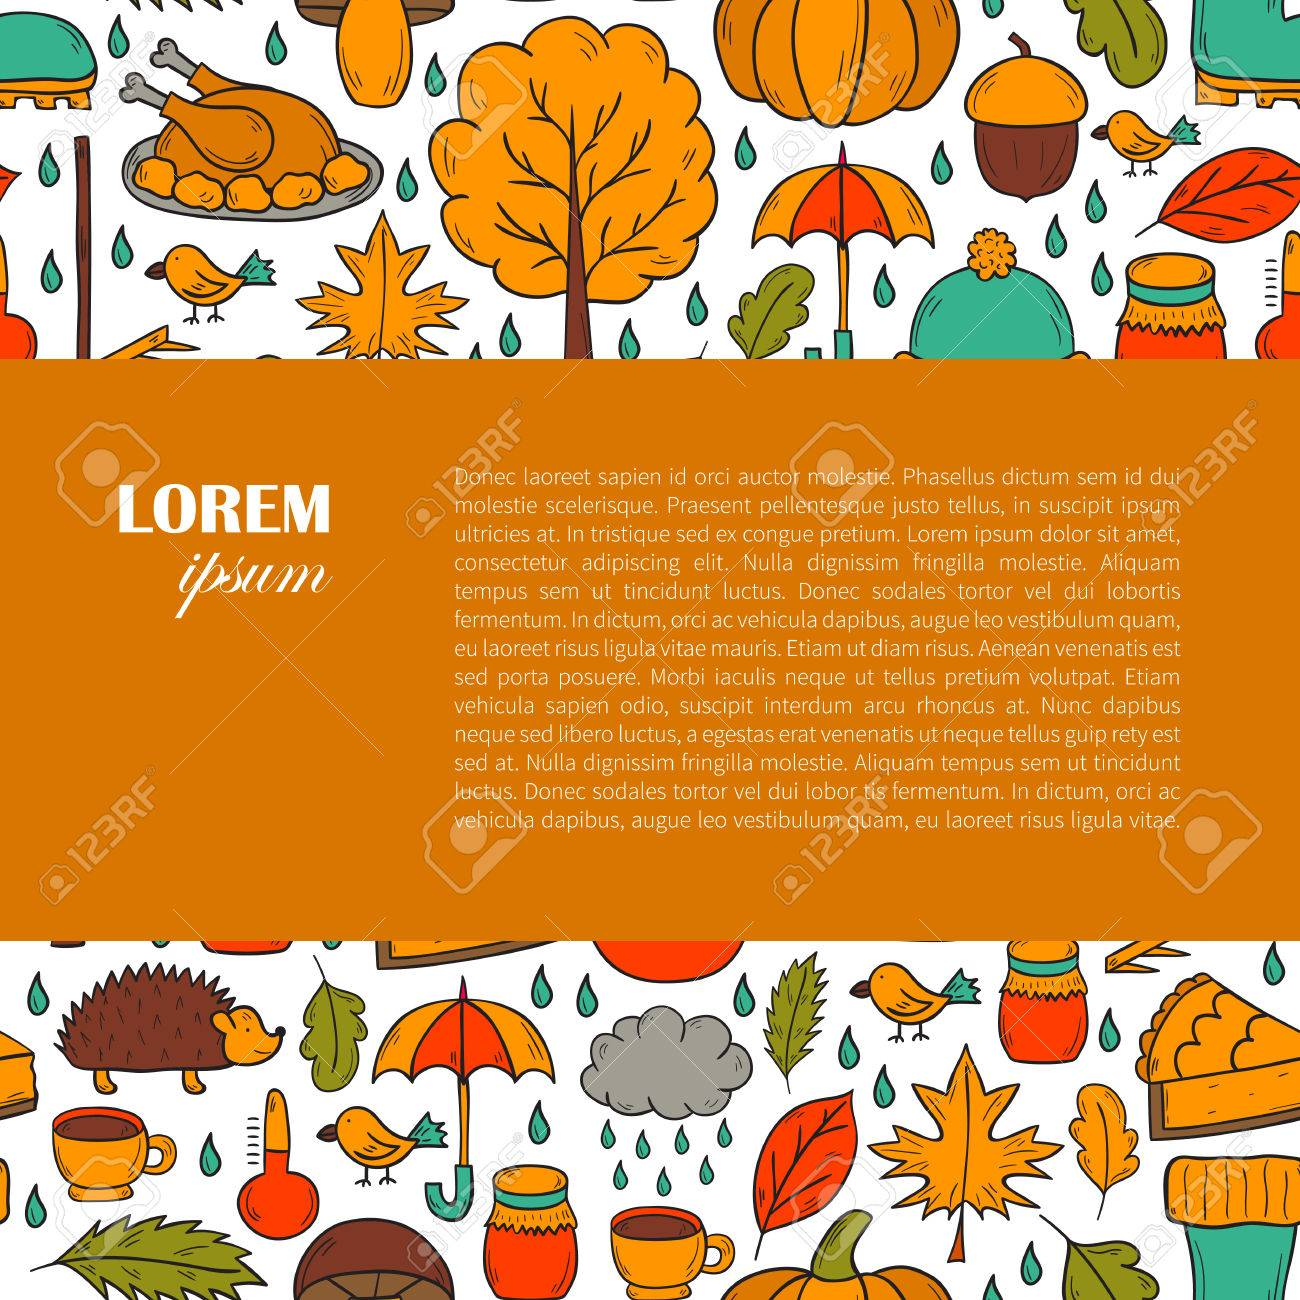 hight resolution of vector cartoon illustration with hand drawn autumn background pumpkin pie turkey autumn leaves